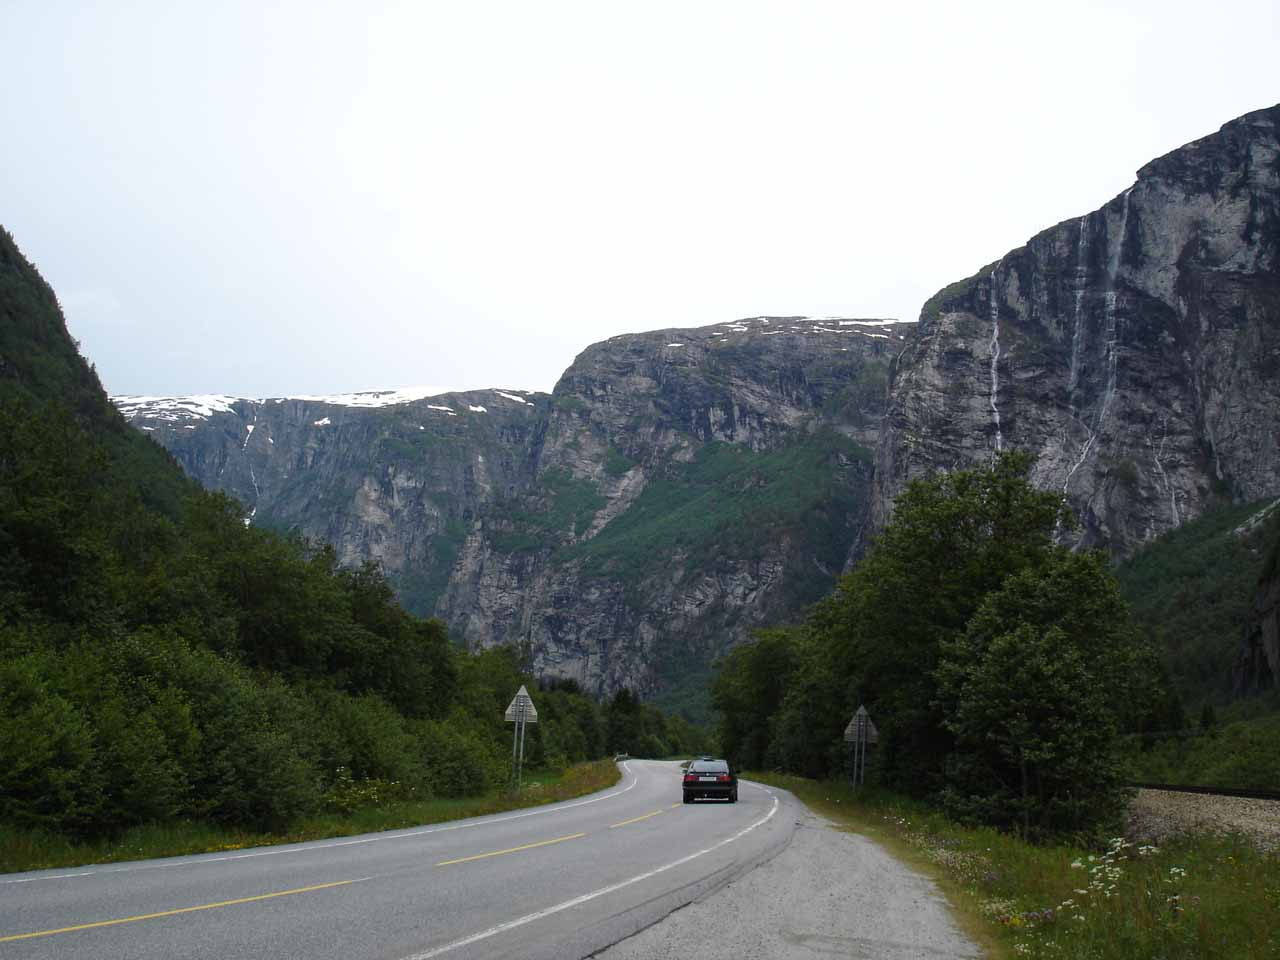 Just north of Gravdefossen, the drive through Romsdalen started getting real interesting